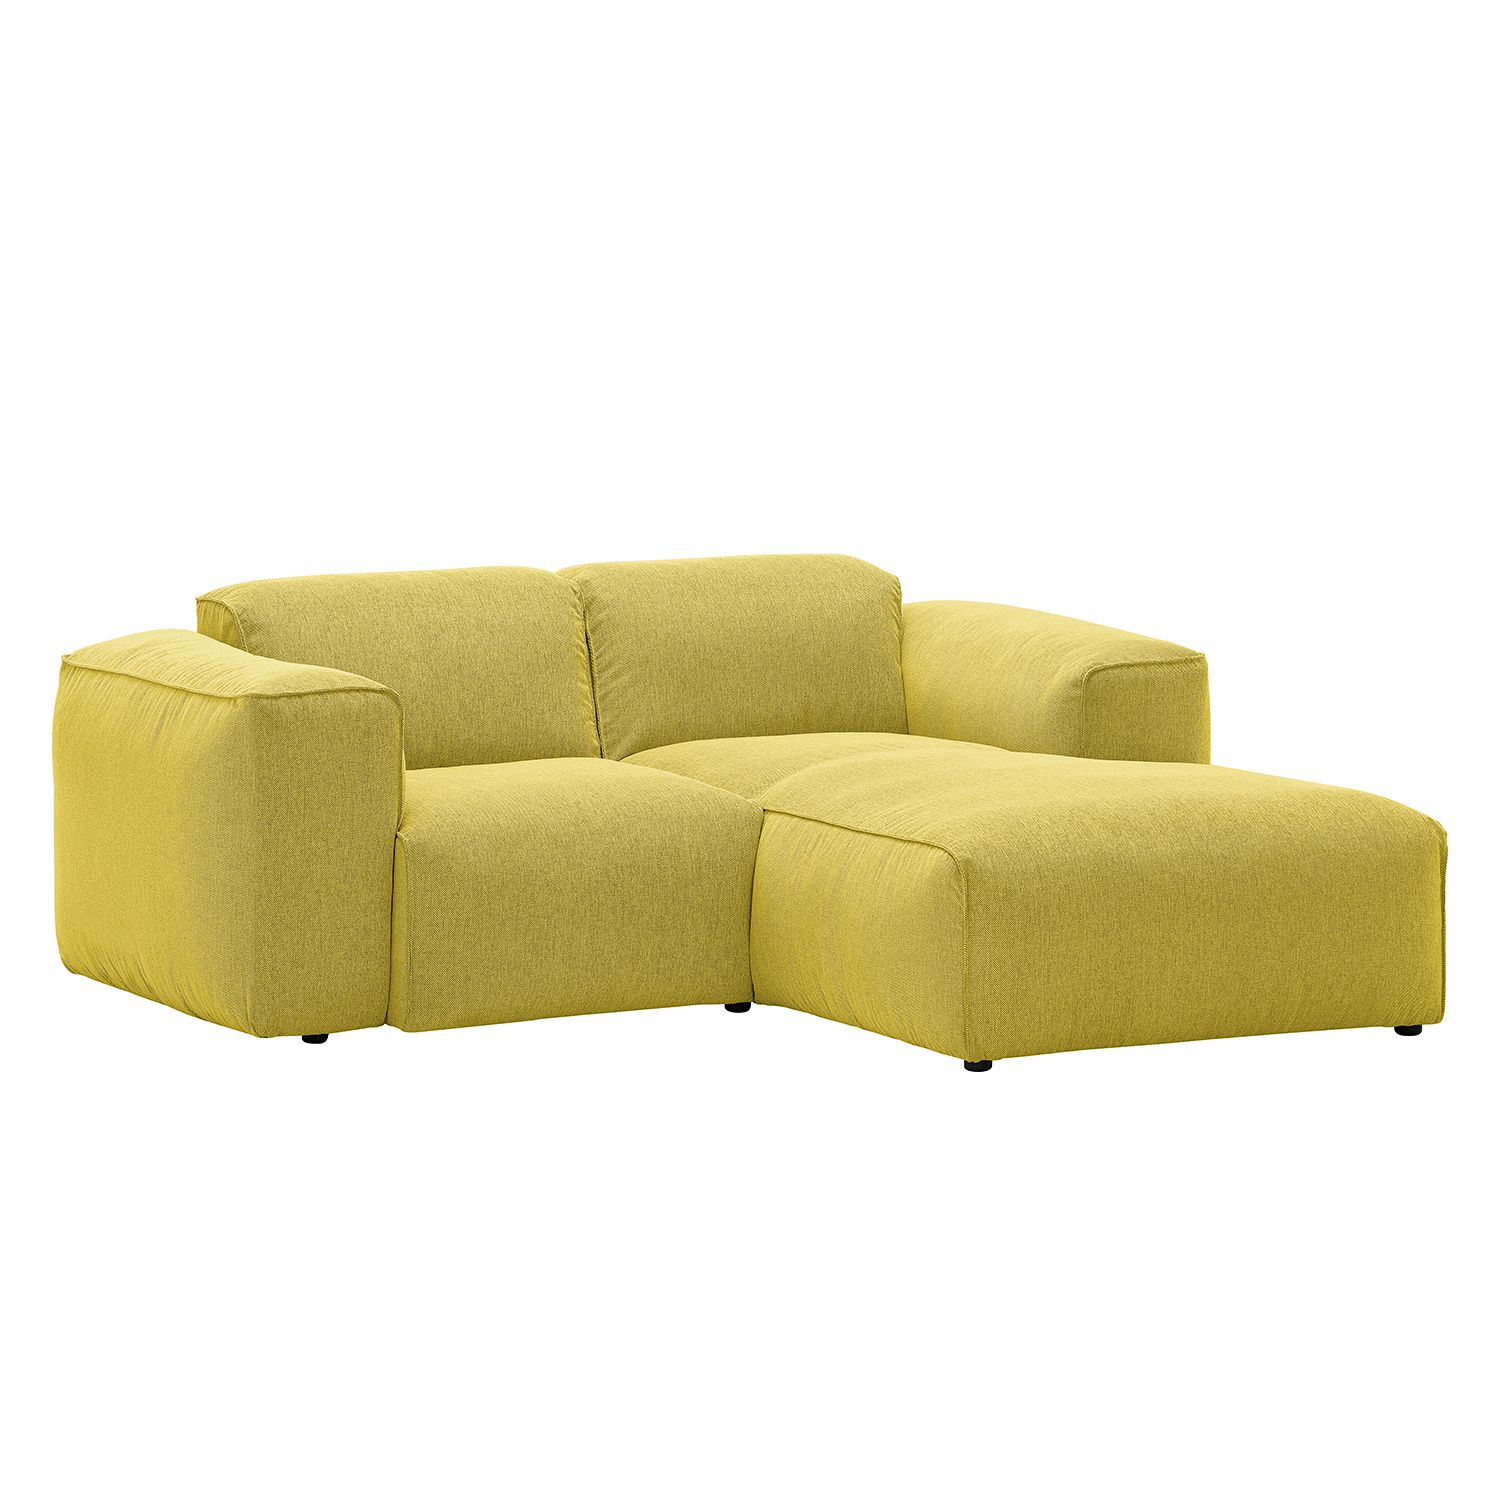 Otto Sofa Gelb Ecksofa Kaufen Gnstig Affordable Levi Ecksofa With